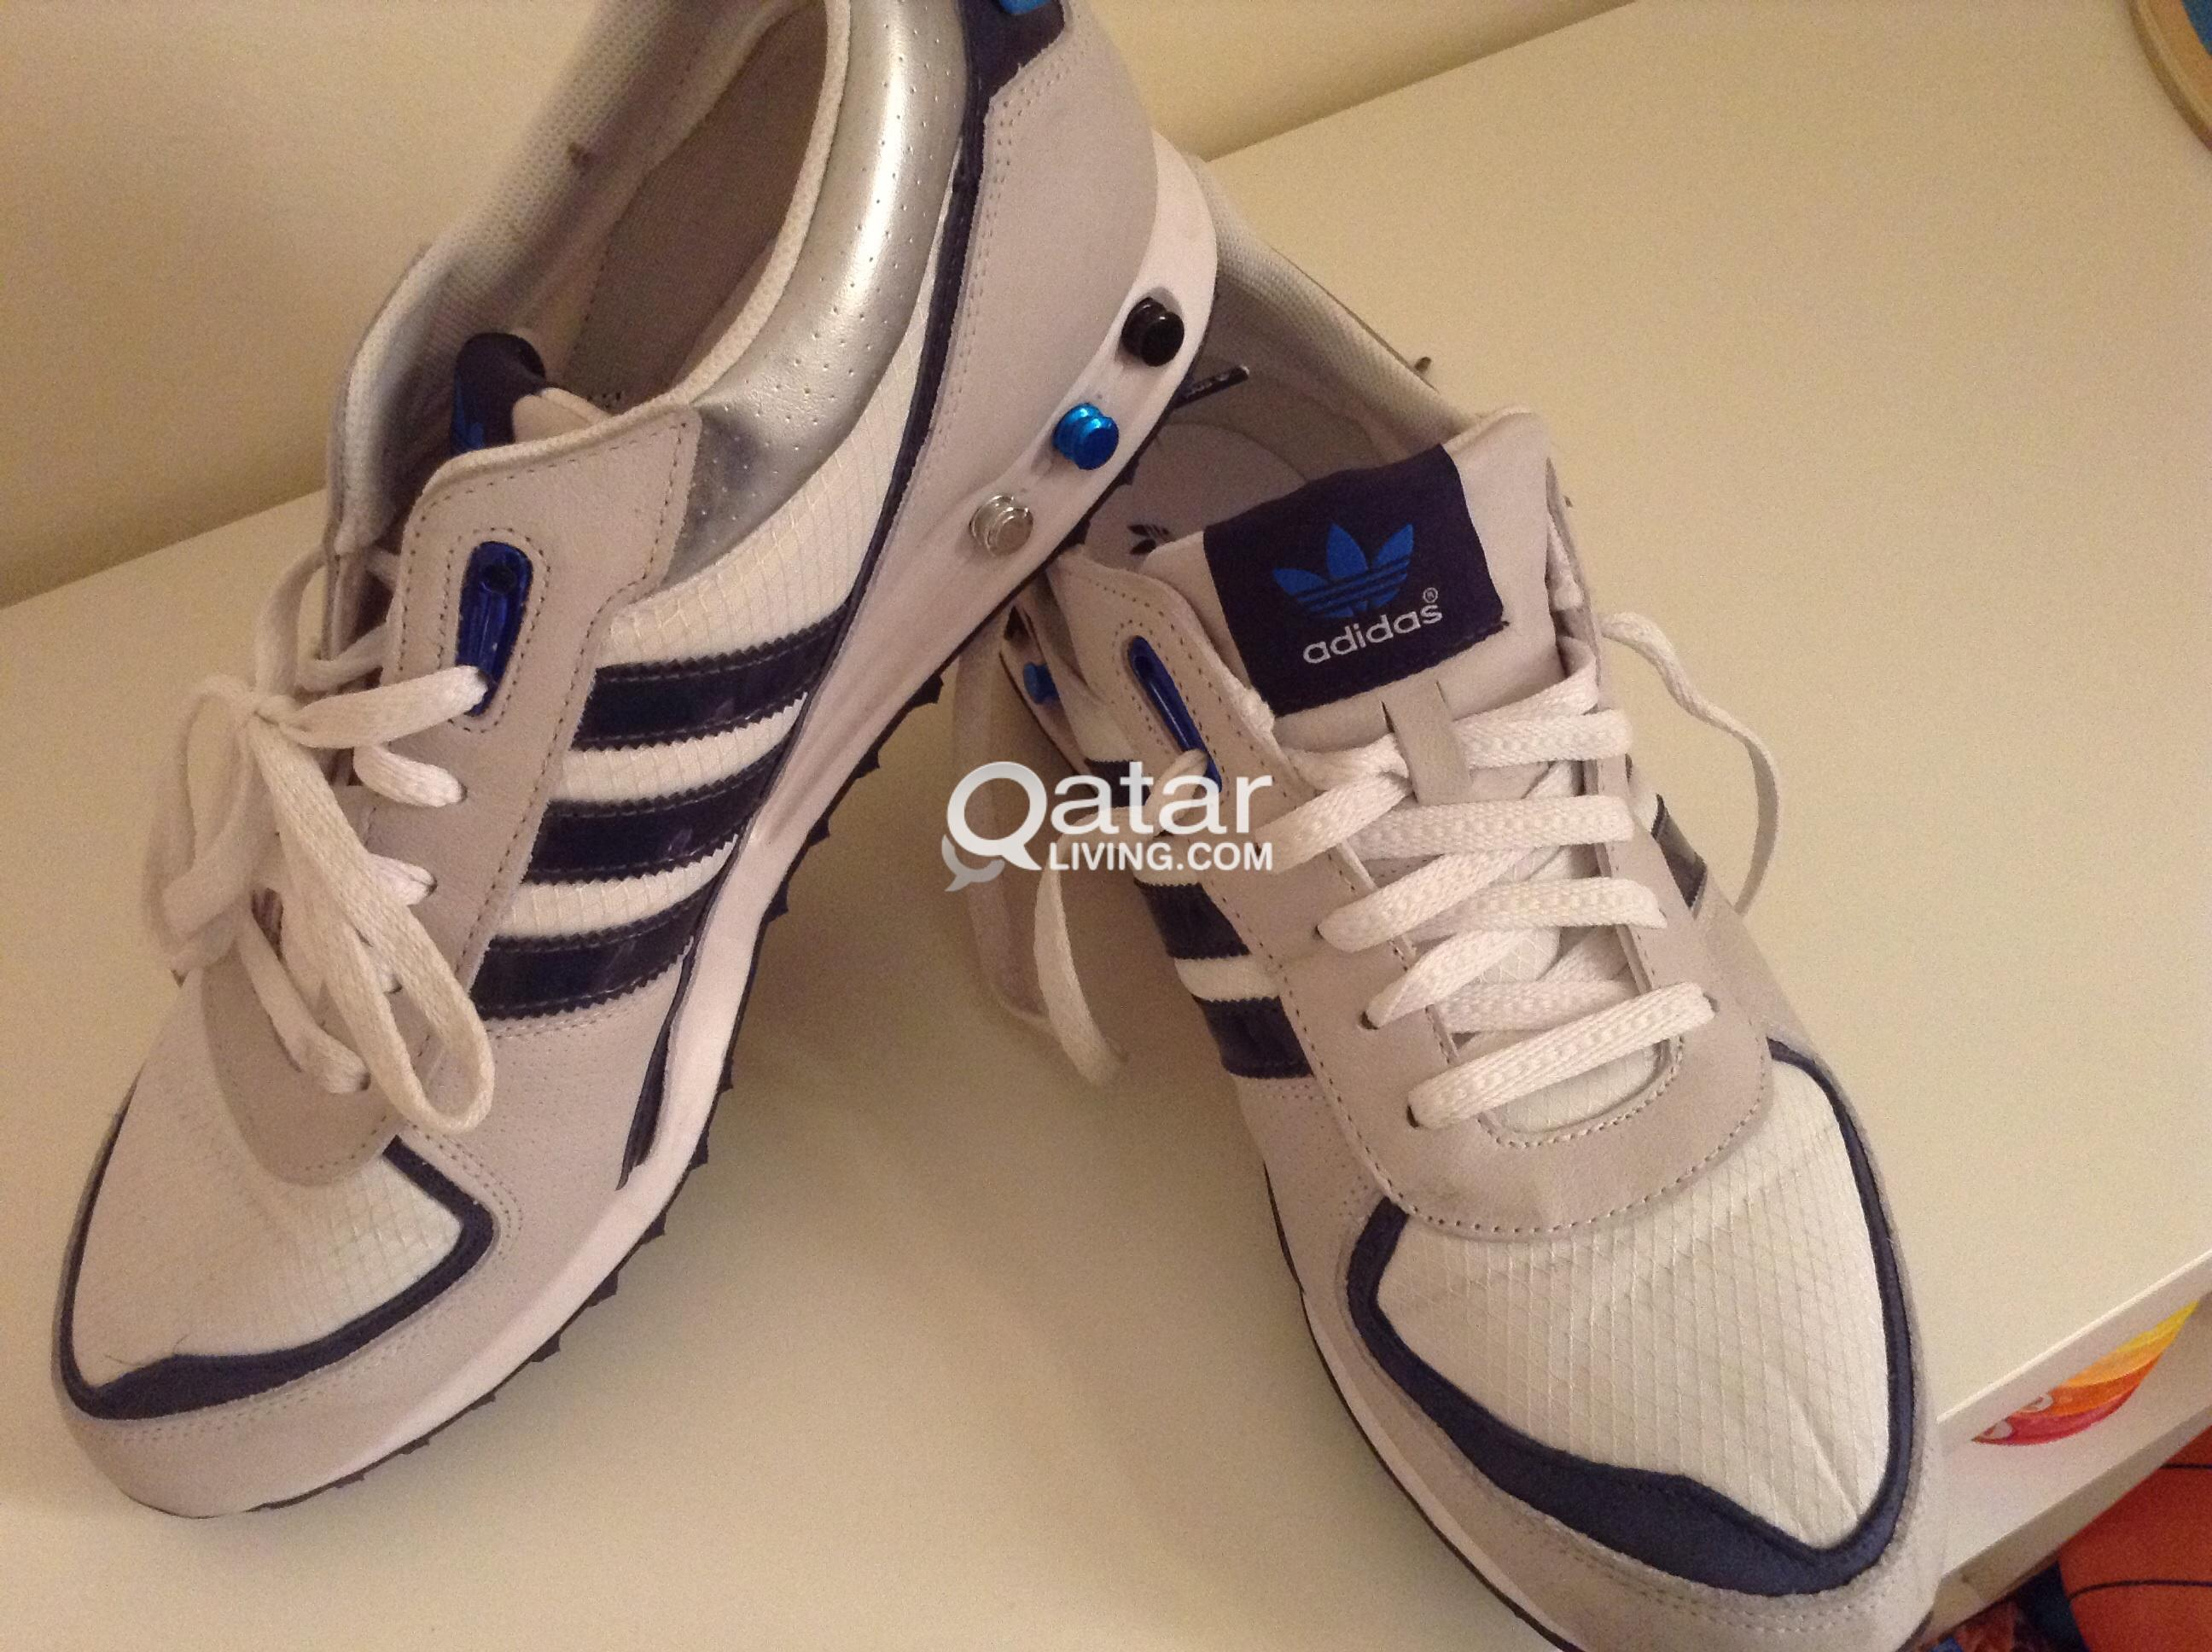 title; title; title; title; title; title. Information. Adidas Originals L.A  Trainer shoes for sale.